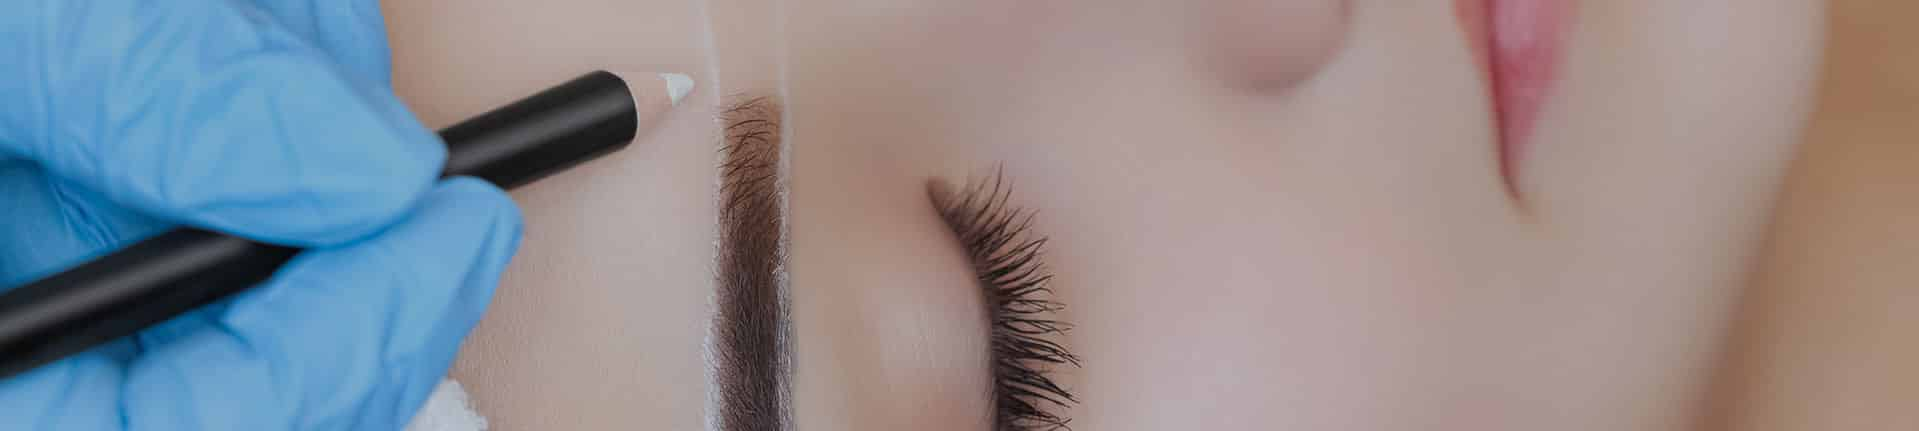 Permanent Make Up Peachtree City